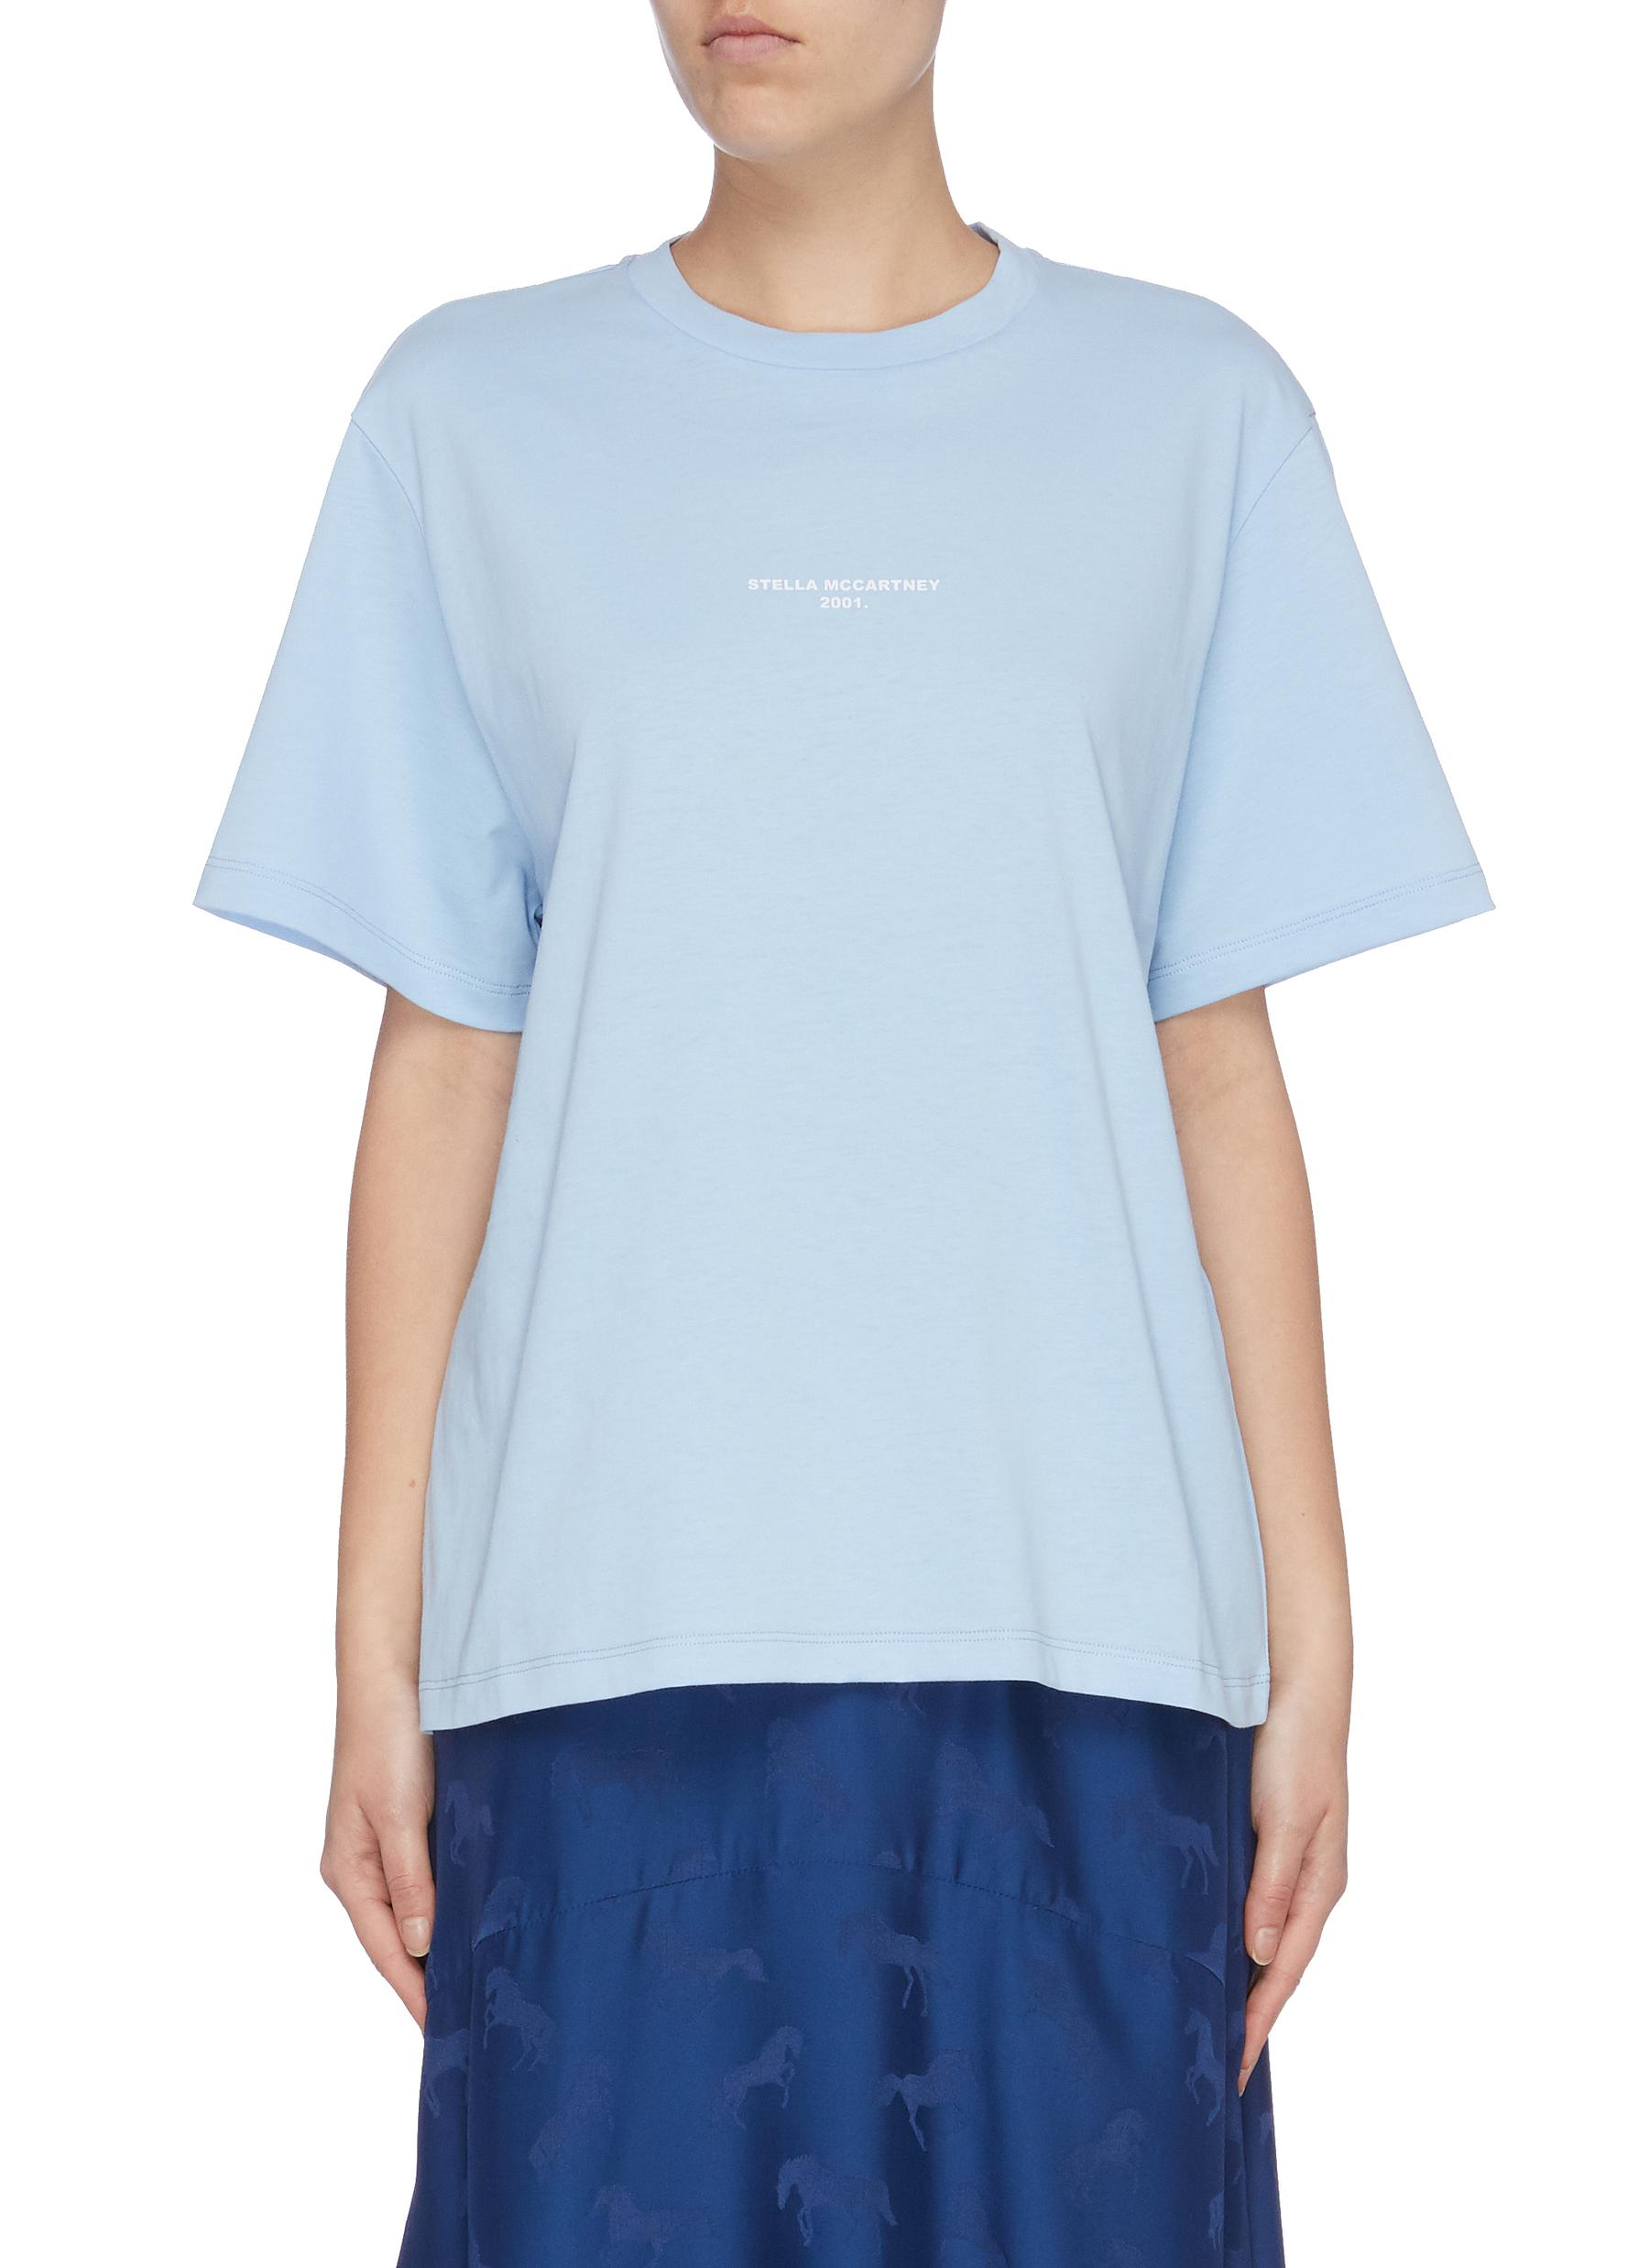 Stella 2001 logo print T-shirt by Stella Mccartney